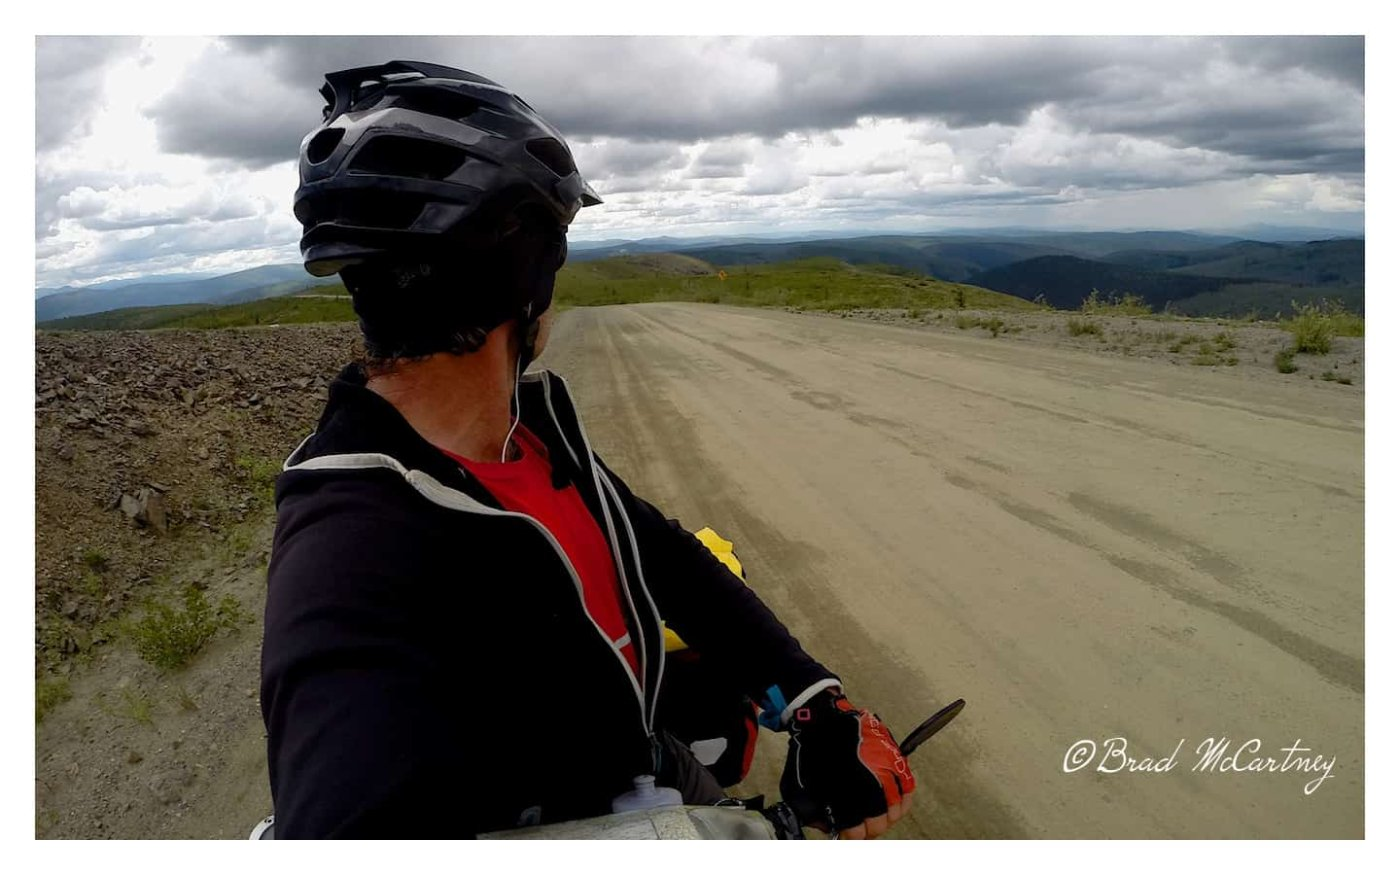 Rain clouds building all round me while cycling the top of the world highway